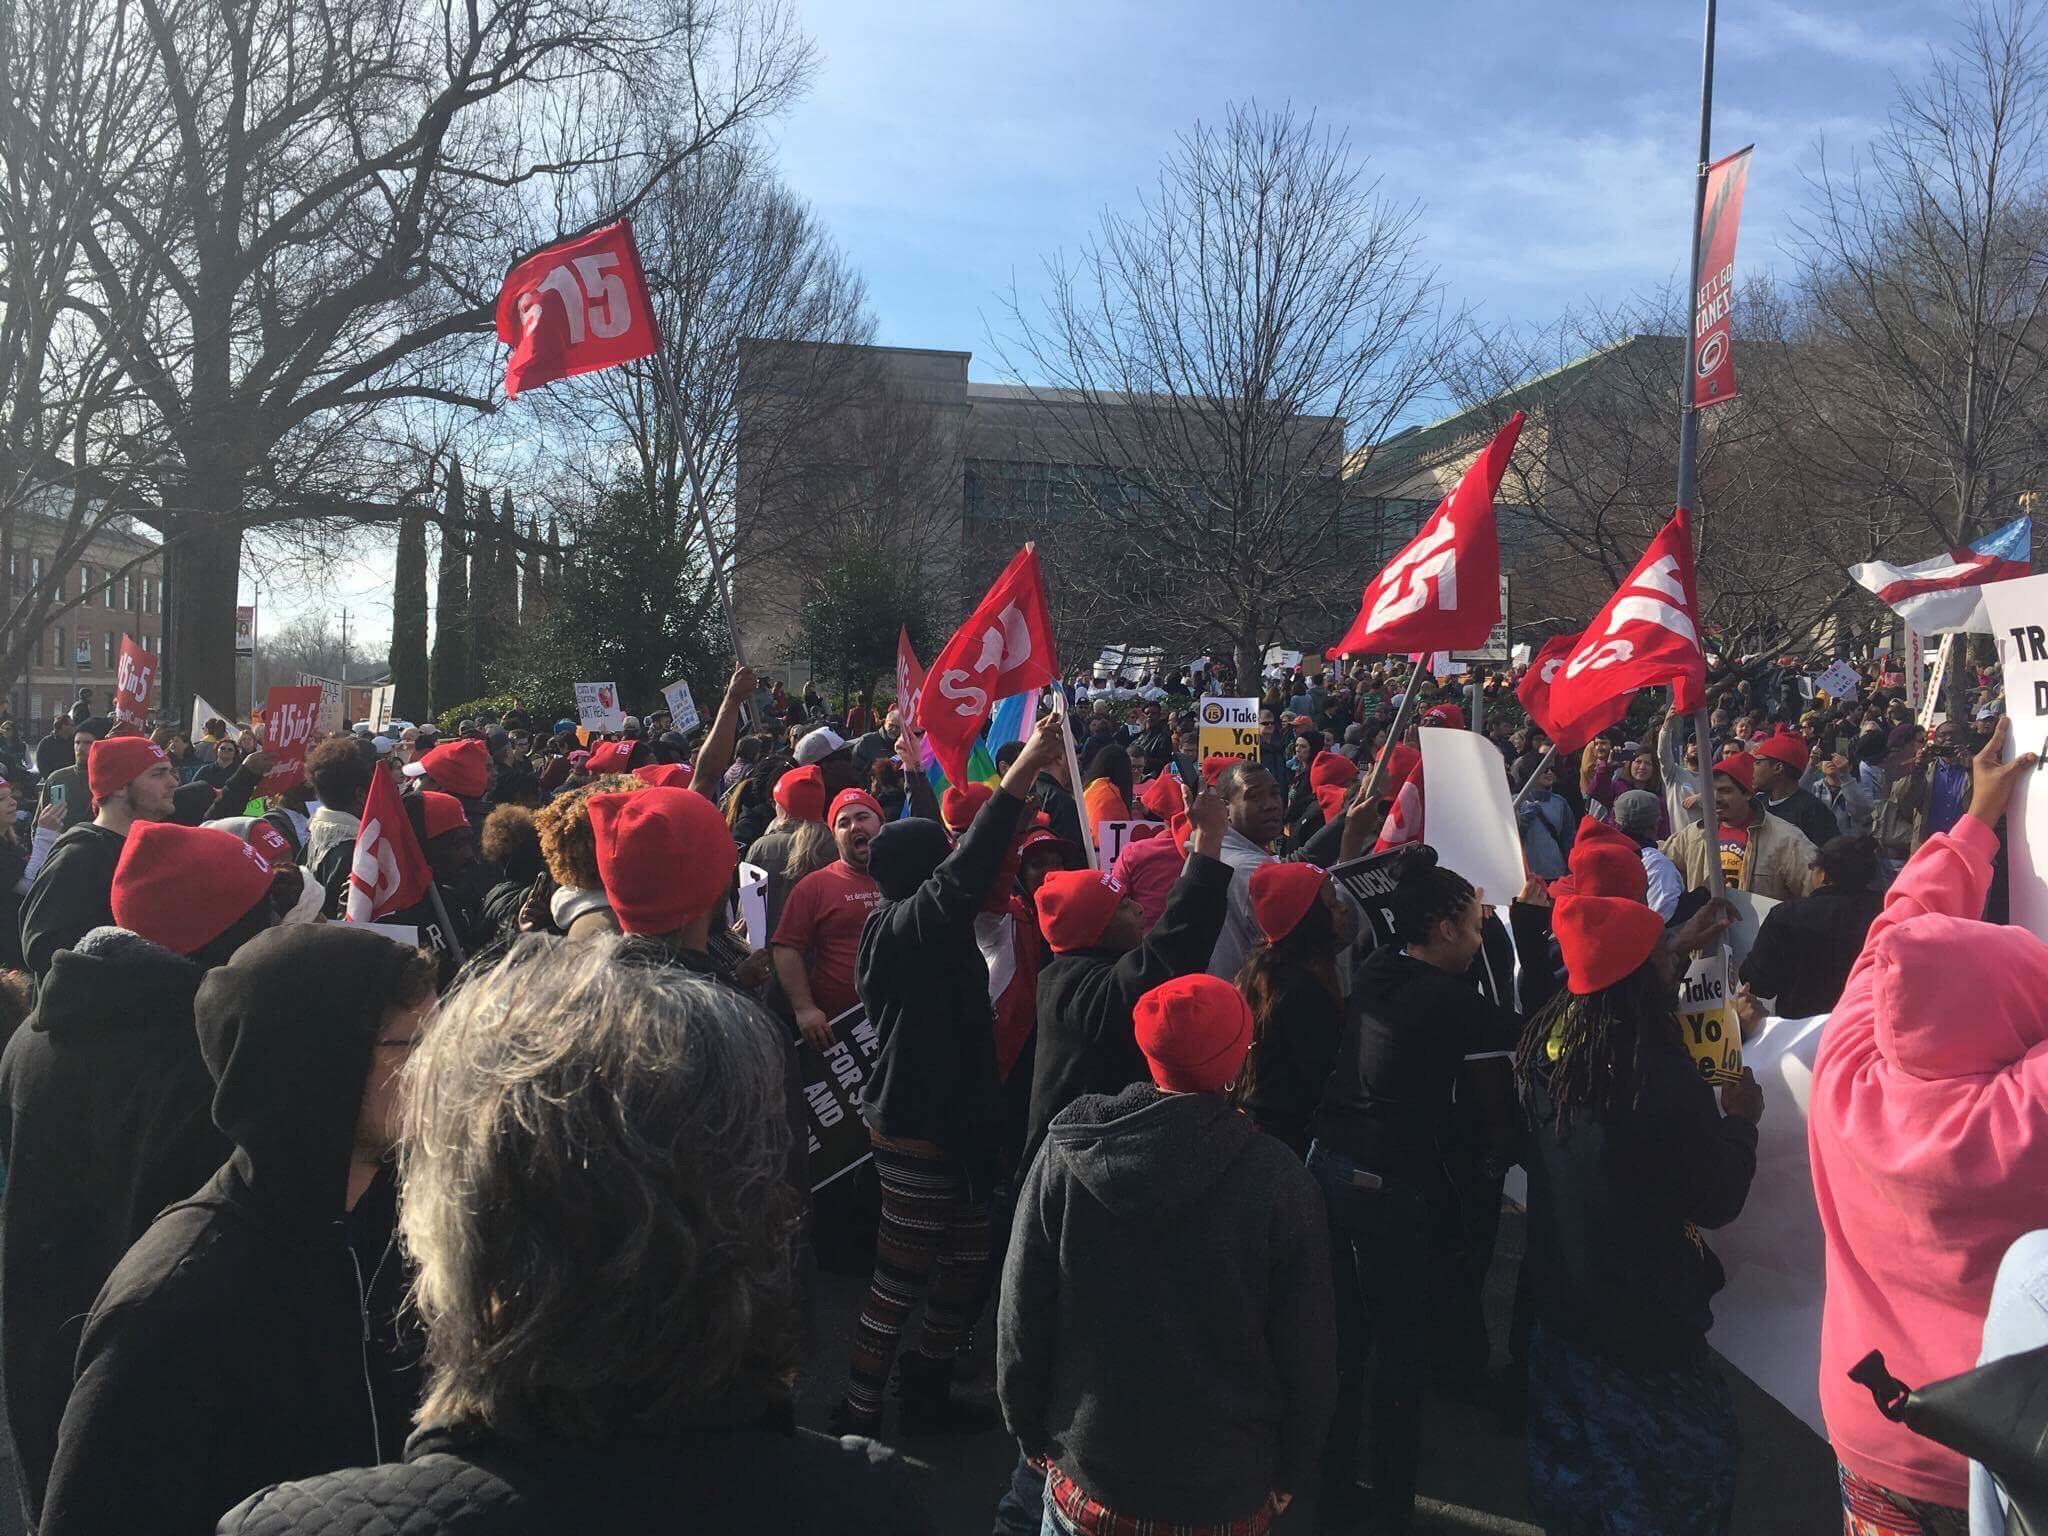 Moral March on Raleigh biggest yet